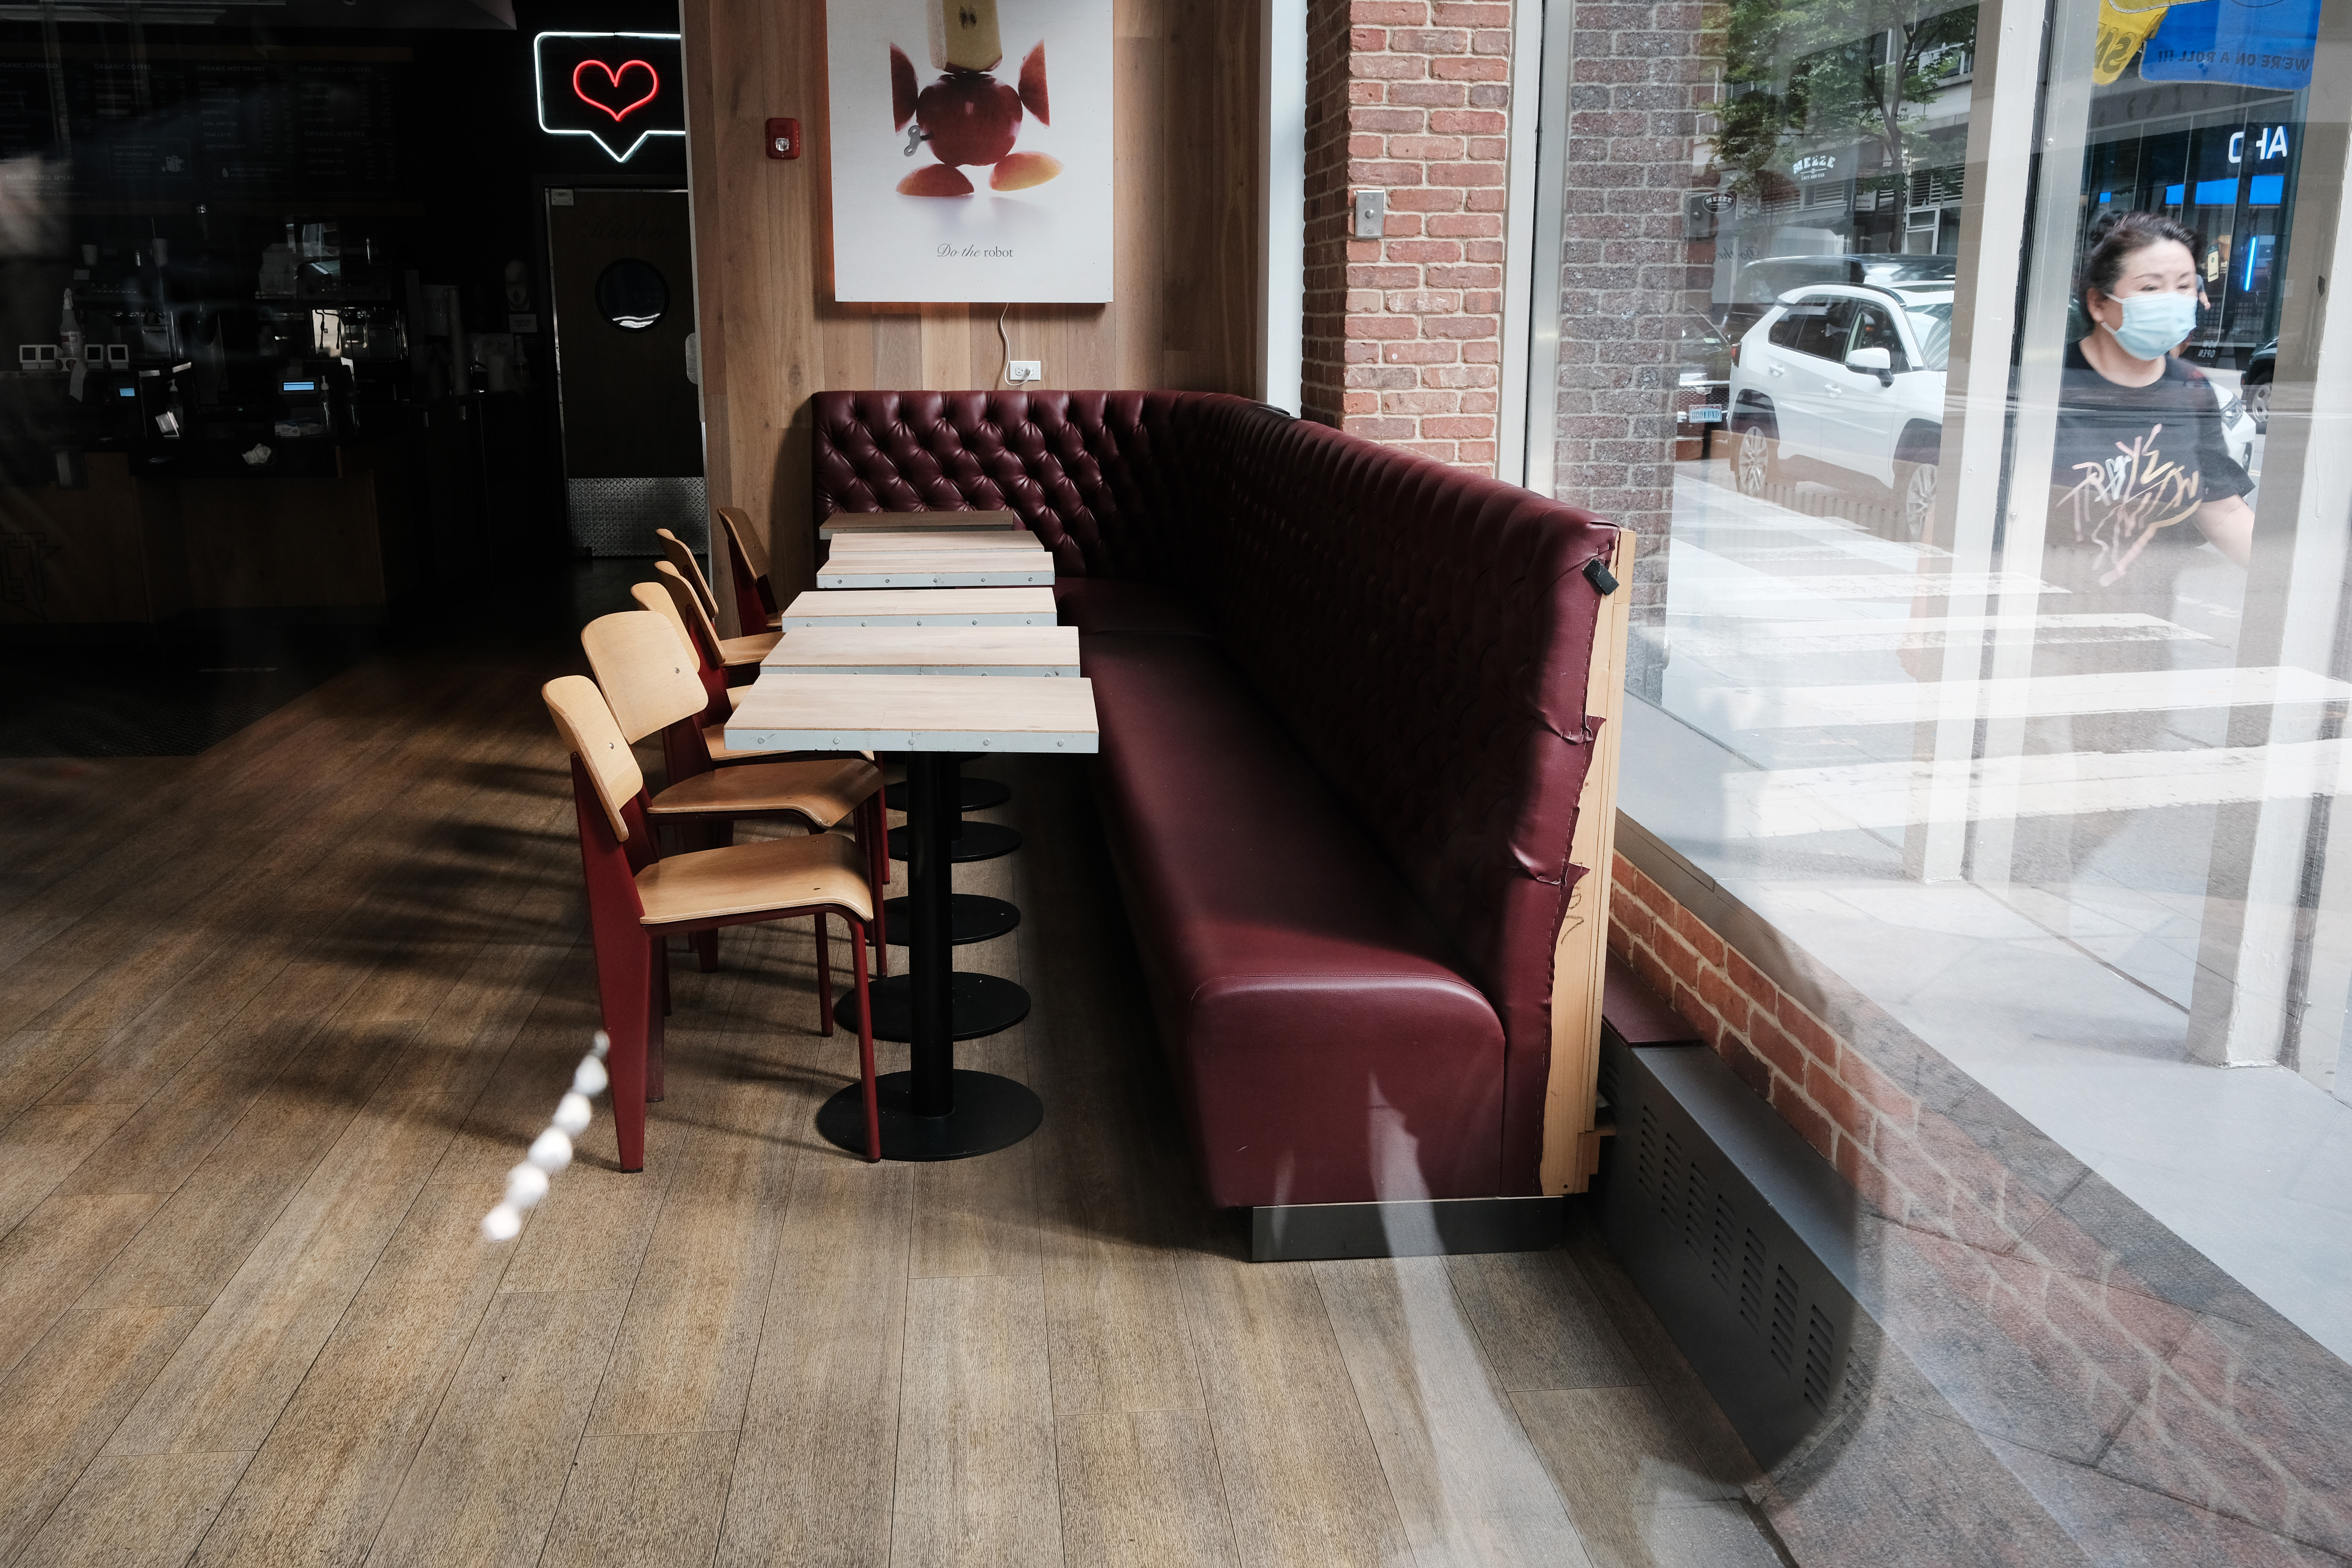 A restaurant with booths, white tables, and chairs next to storefront windows sits closed in midtown on August 30, 2021 in New York City.